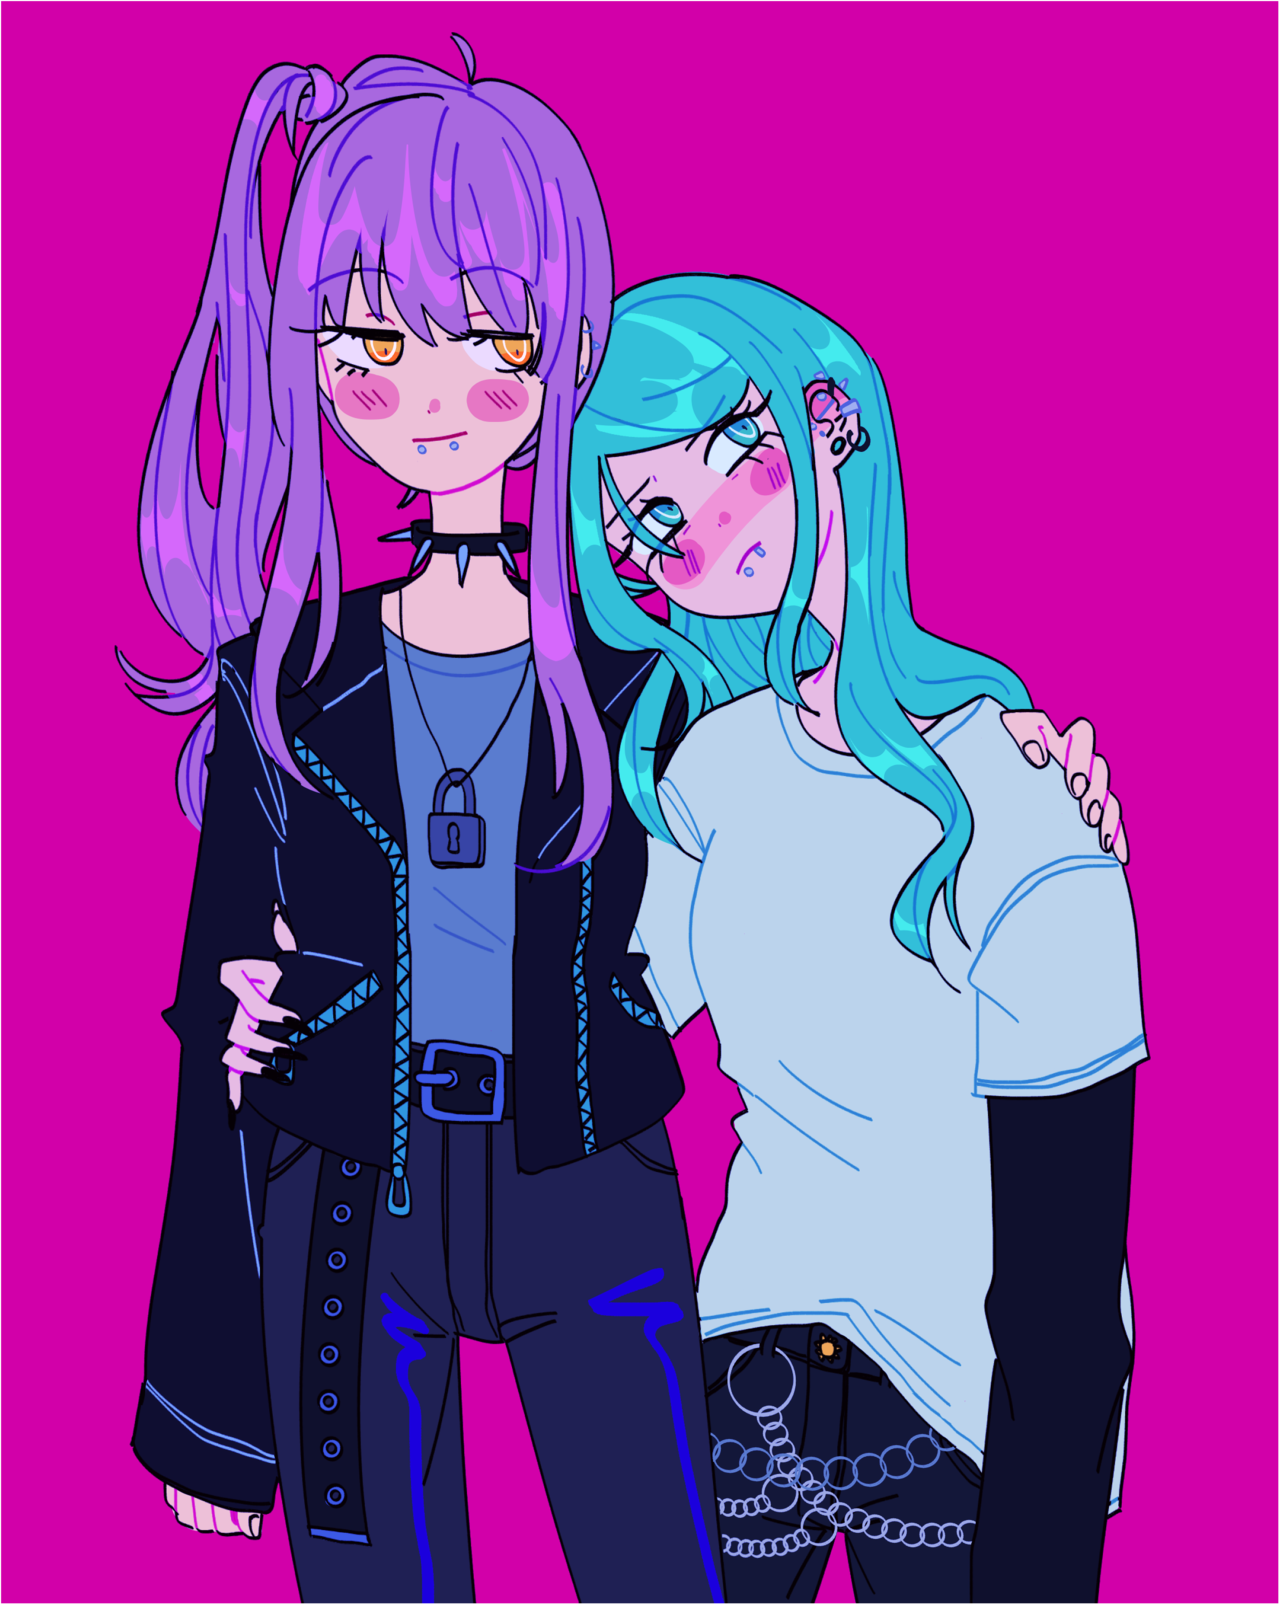 Pin by 𝓆 💒 on *。 bandori in 2020 (With images) Girl